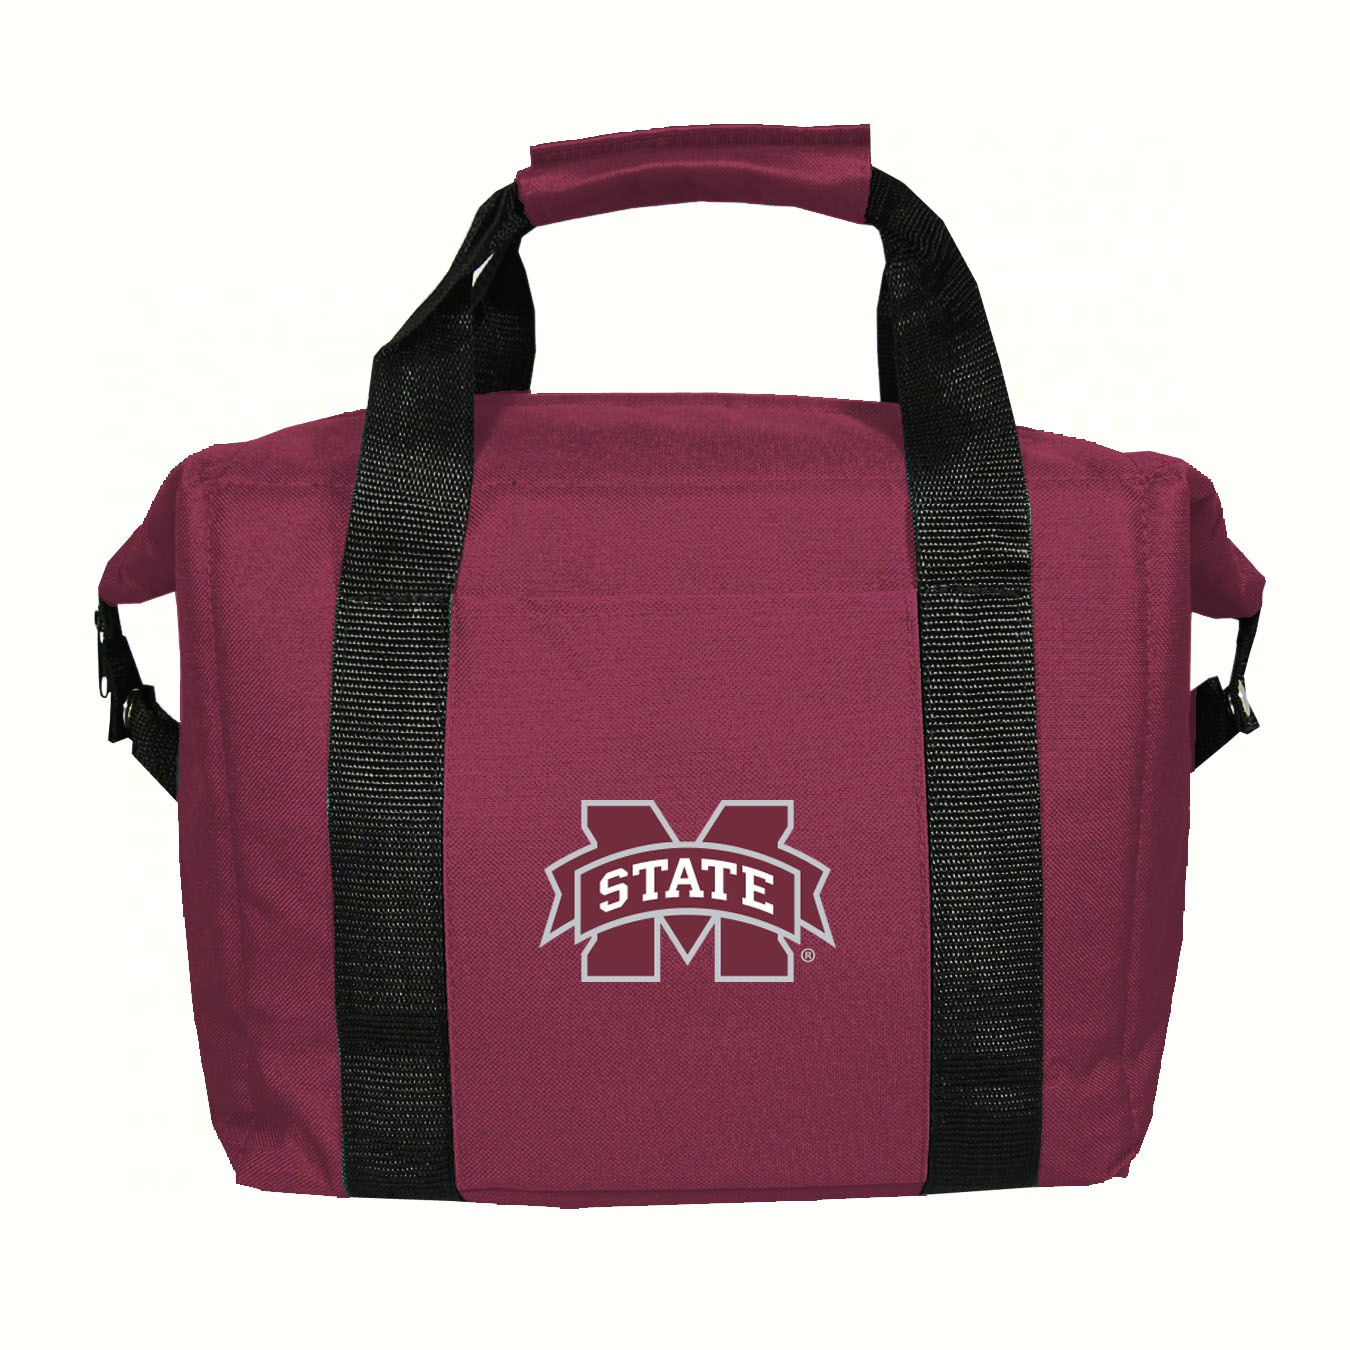 Kooler Bag - Mississippi State Bulldogs (Holds a 12 pack)